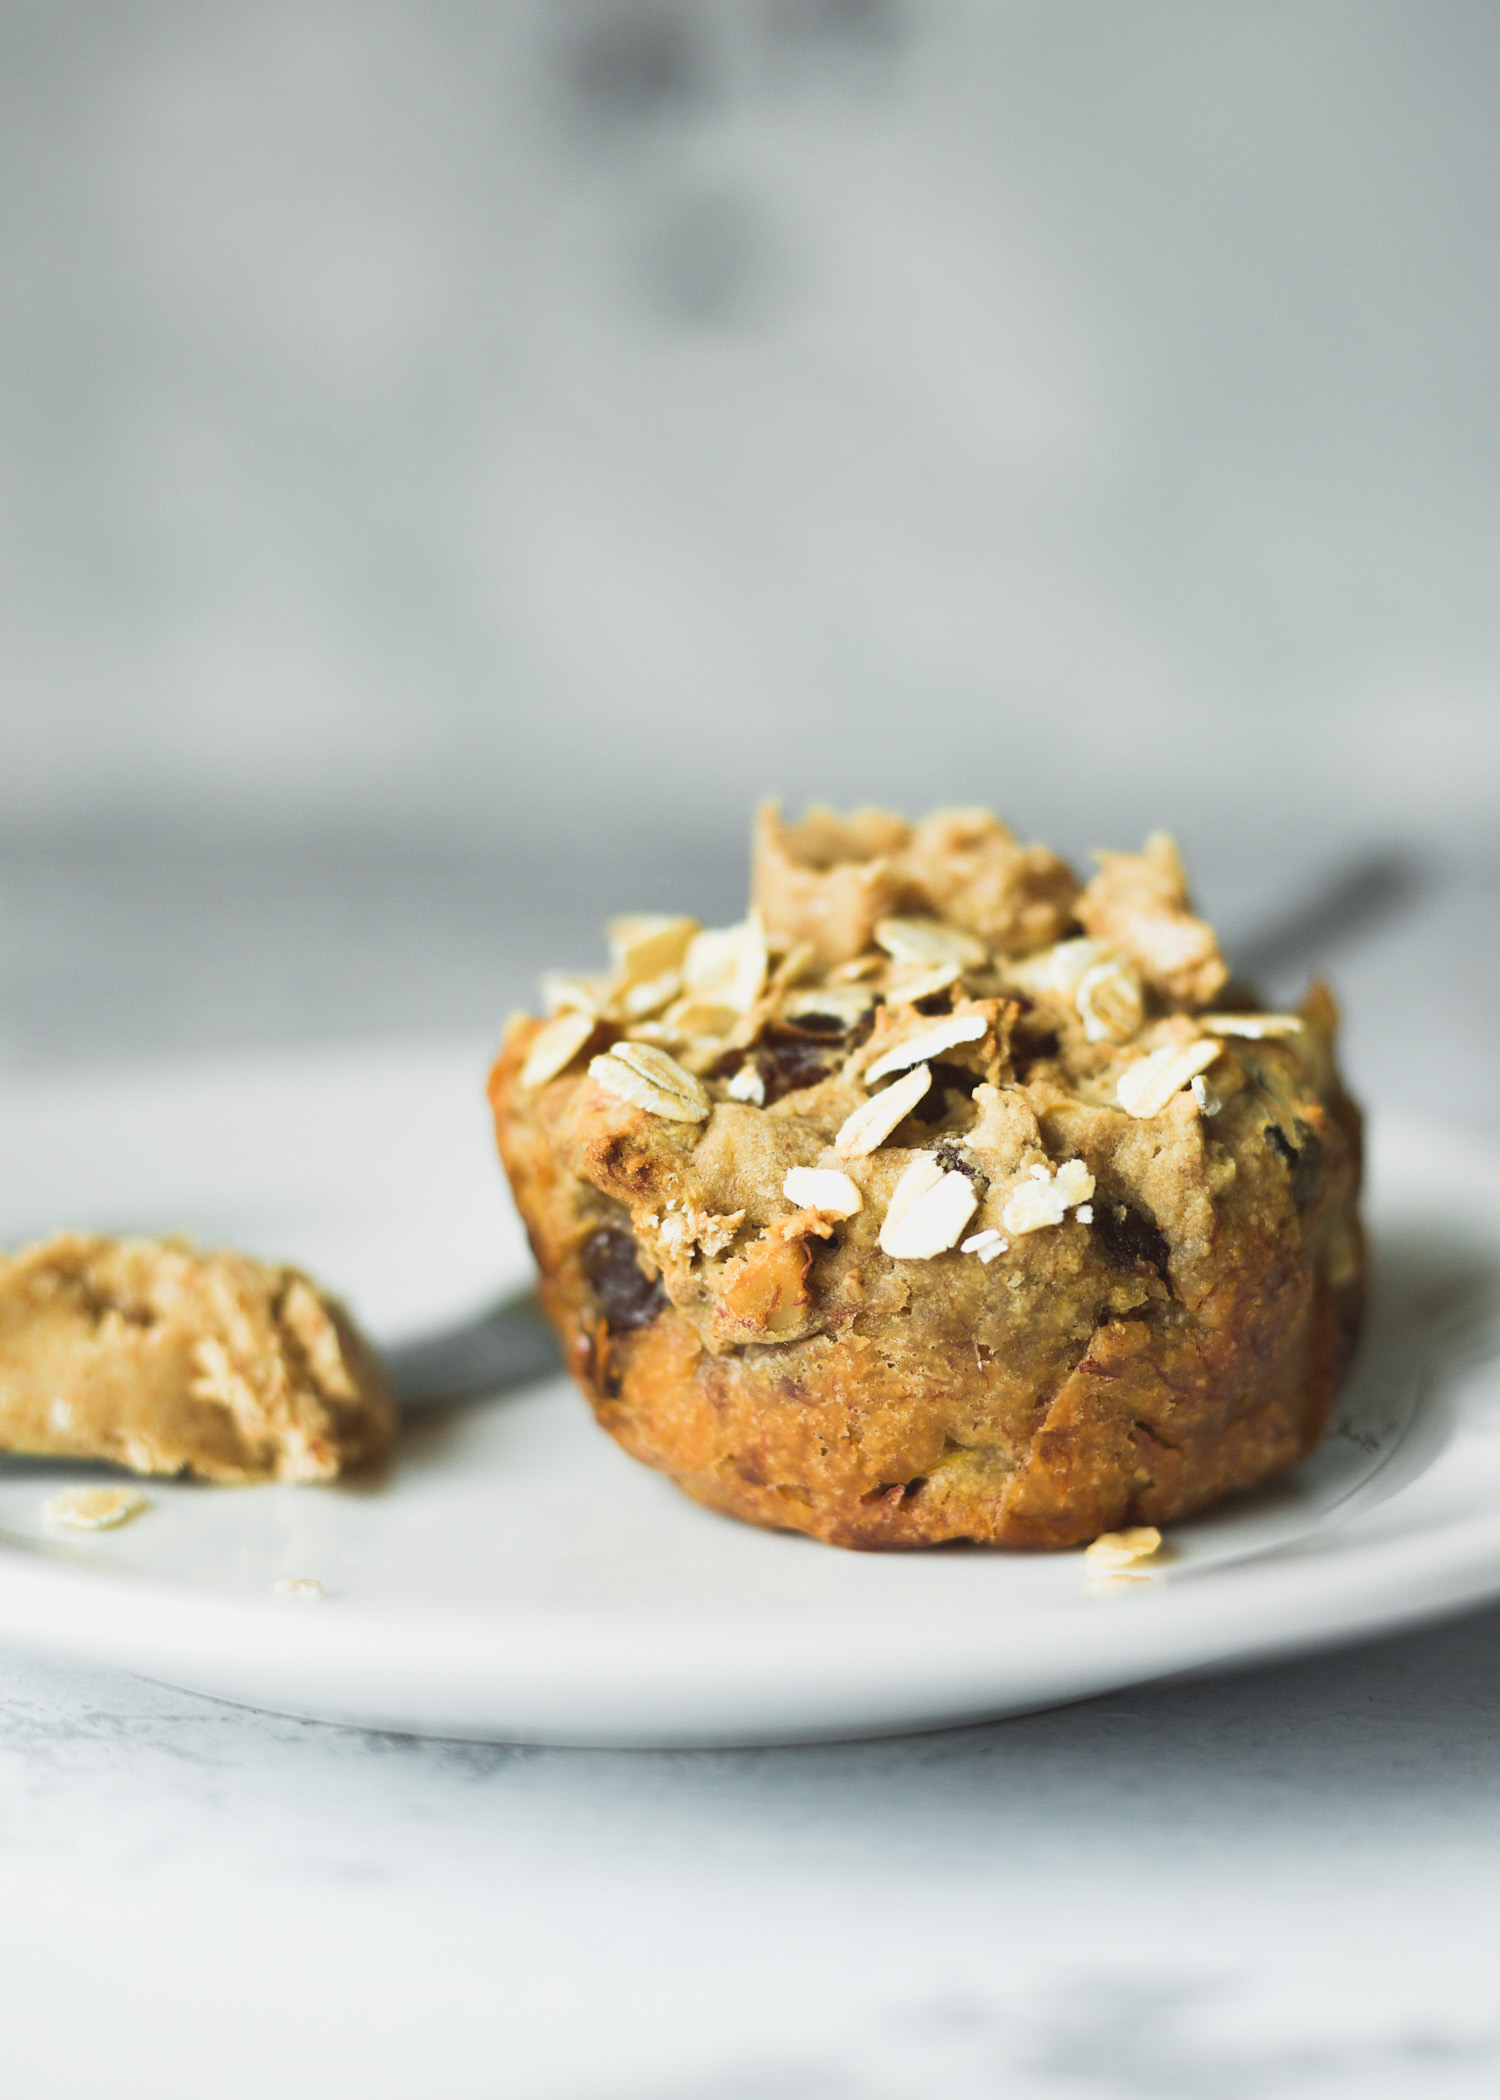 Healthy Breakfast Muffins from The Veginner's Cookbook by Bianca Haun & Sascha Naderer. Photo by Kari of Beautiful Ingredient. Vegan